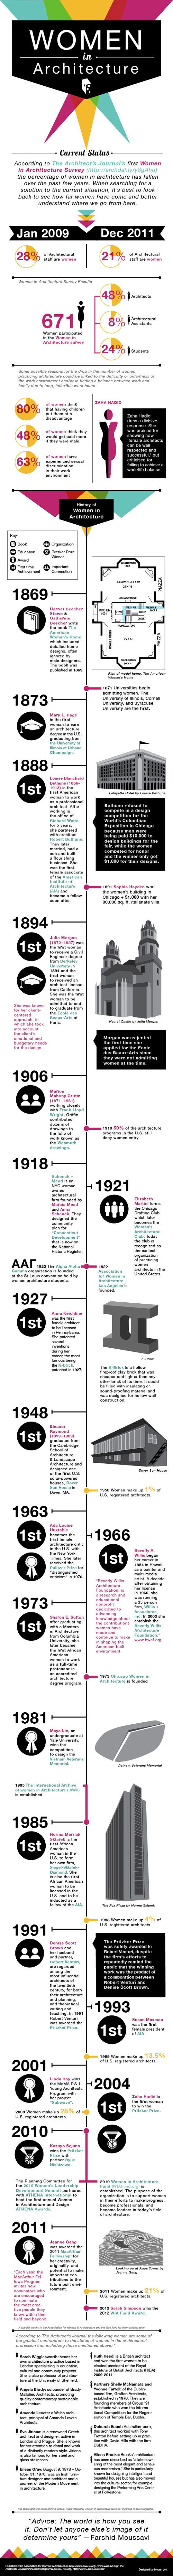 HIstory of women in architecture